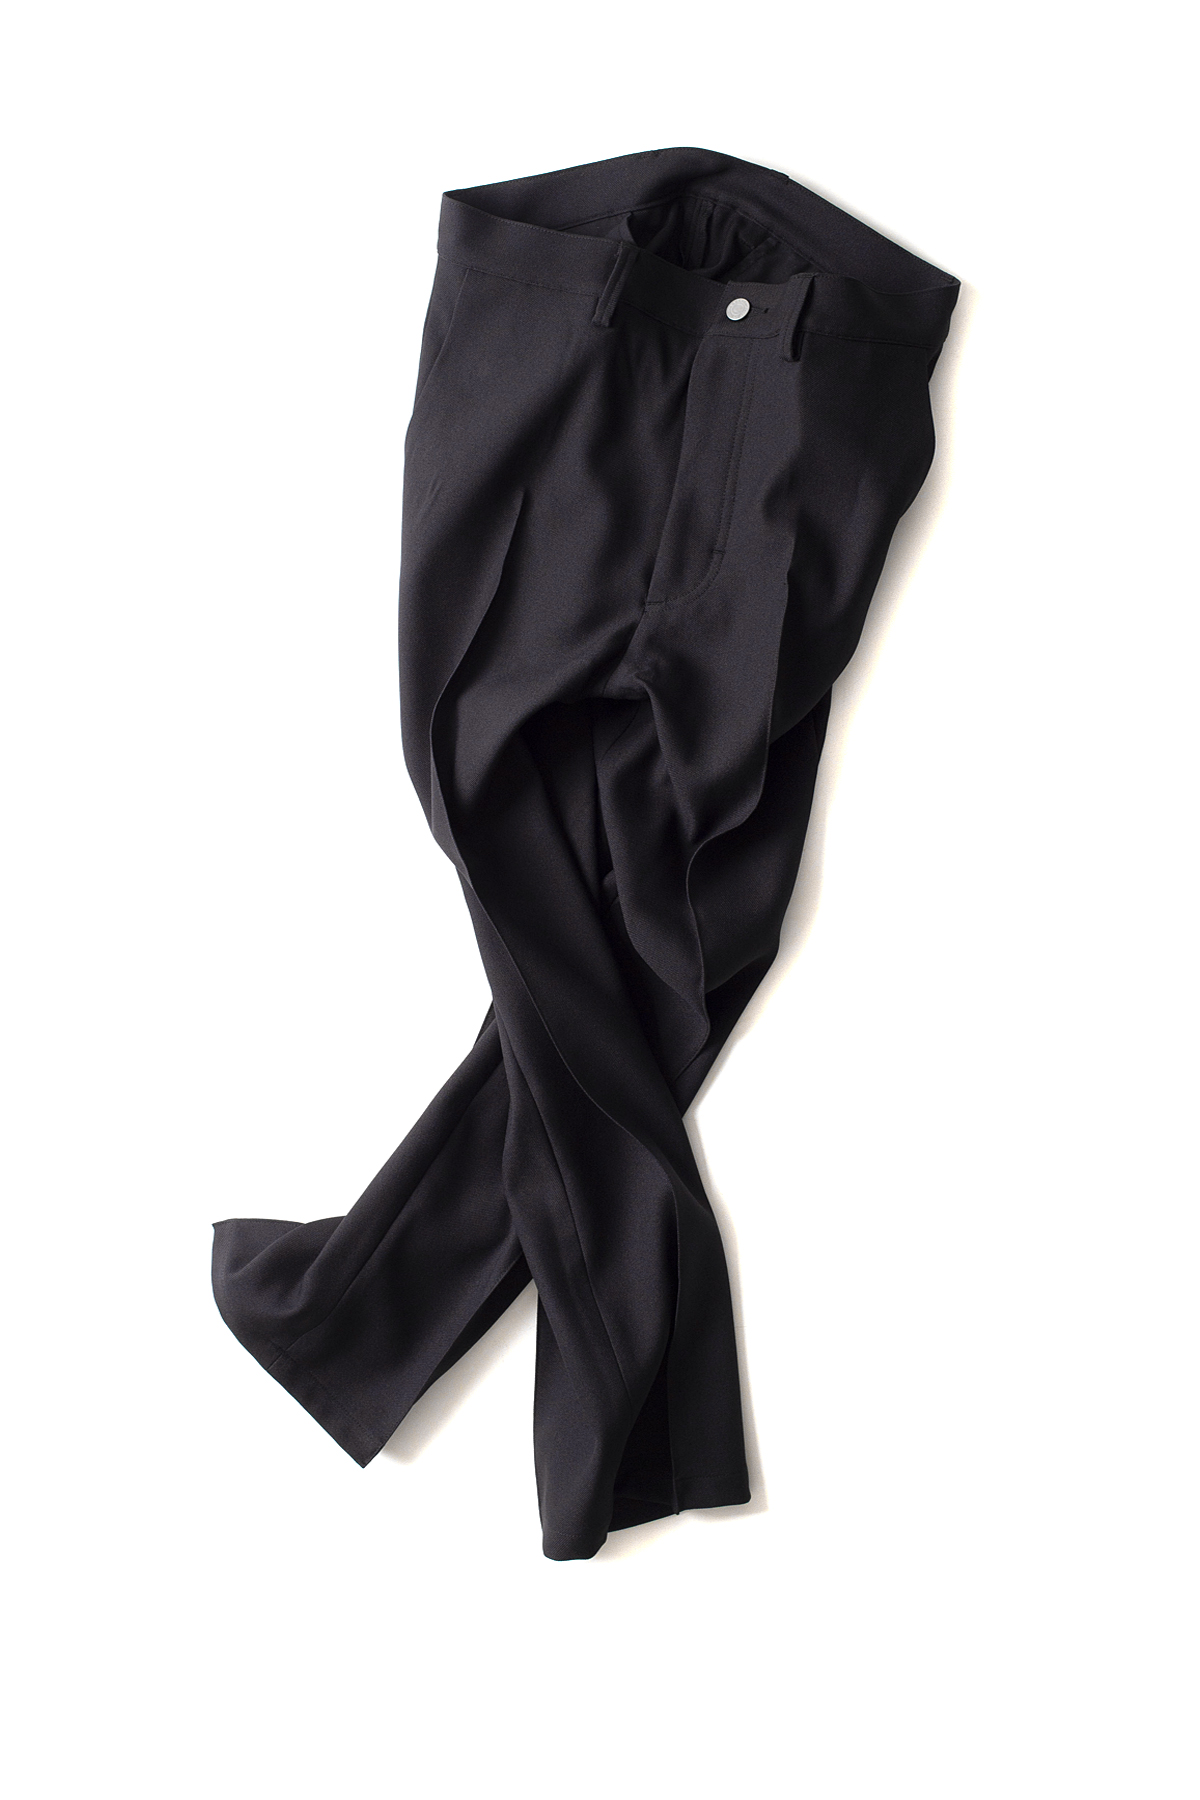 EEL : Star Slacks (Black)